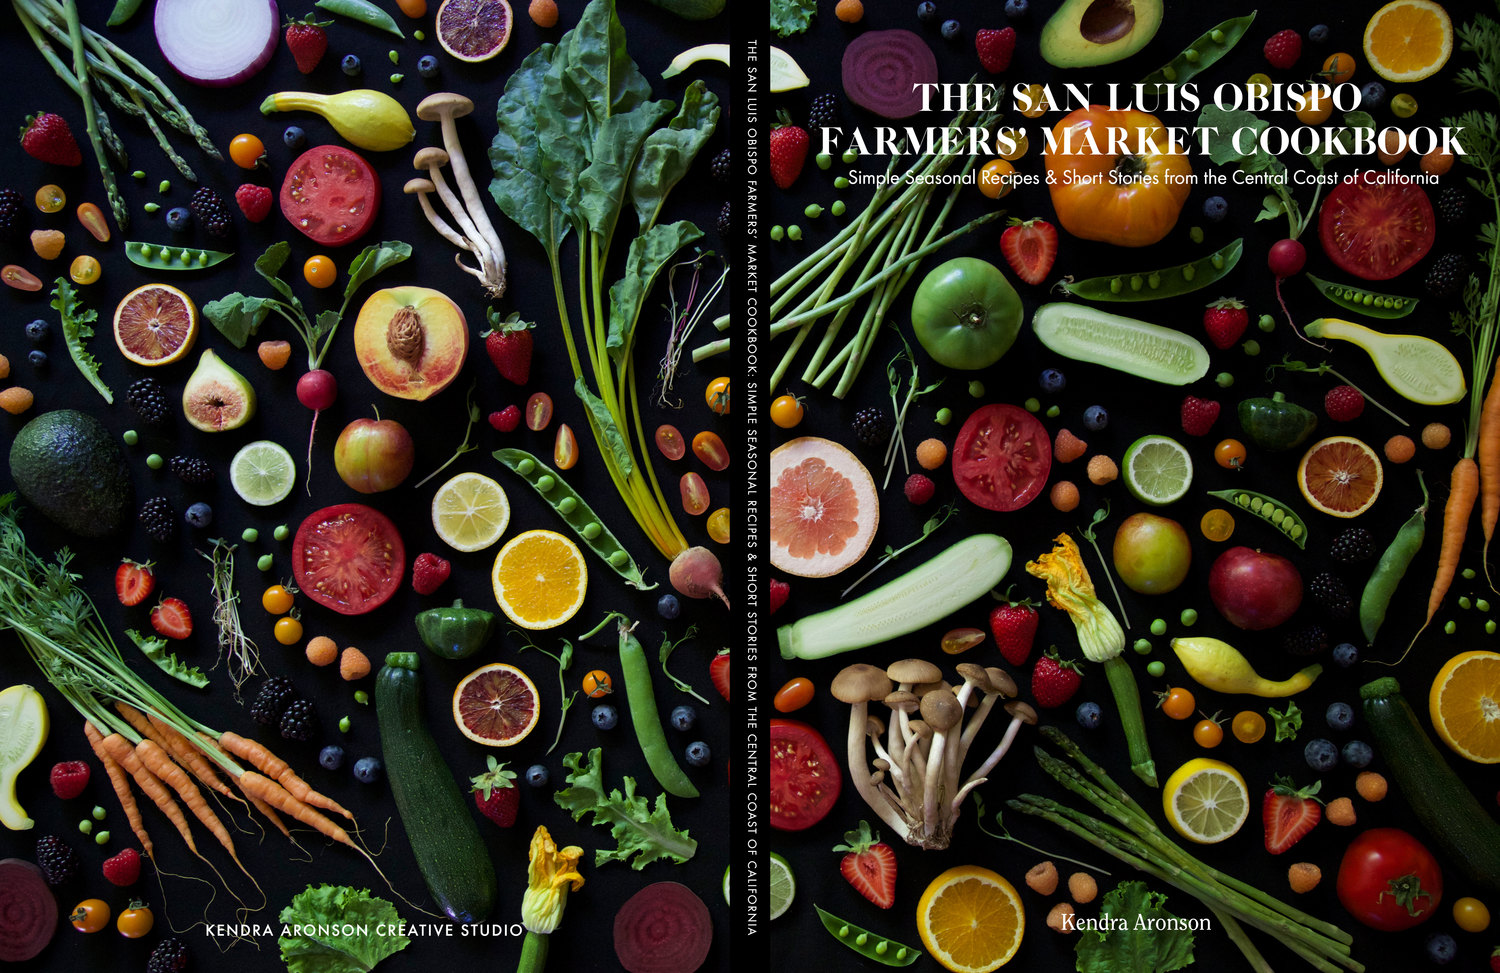 Food52 → 5 Insider Tips for (Successfully) Self-Publishing